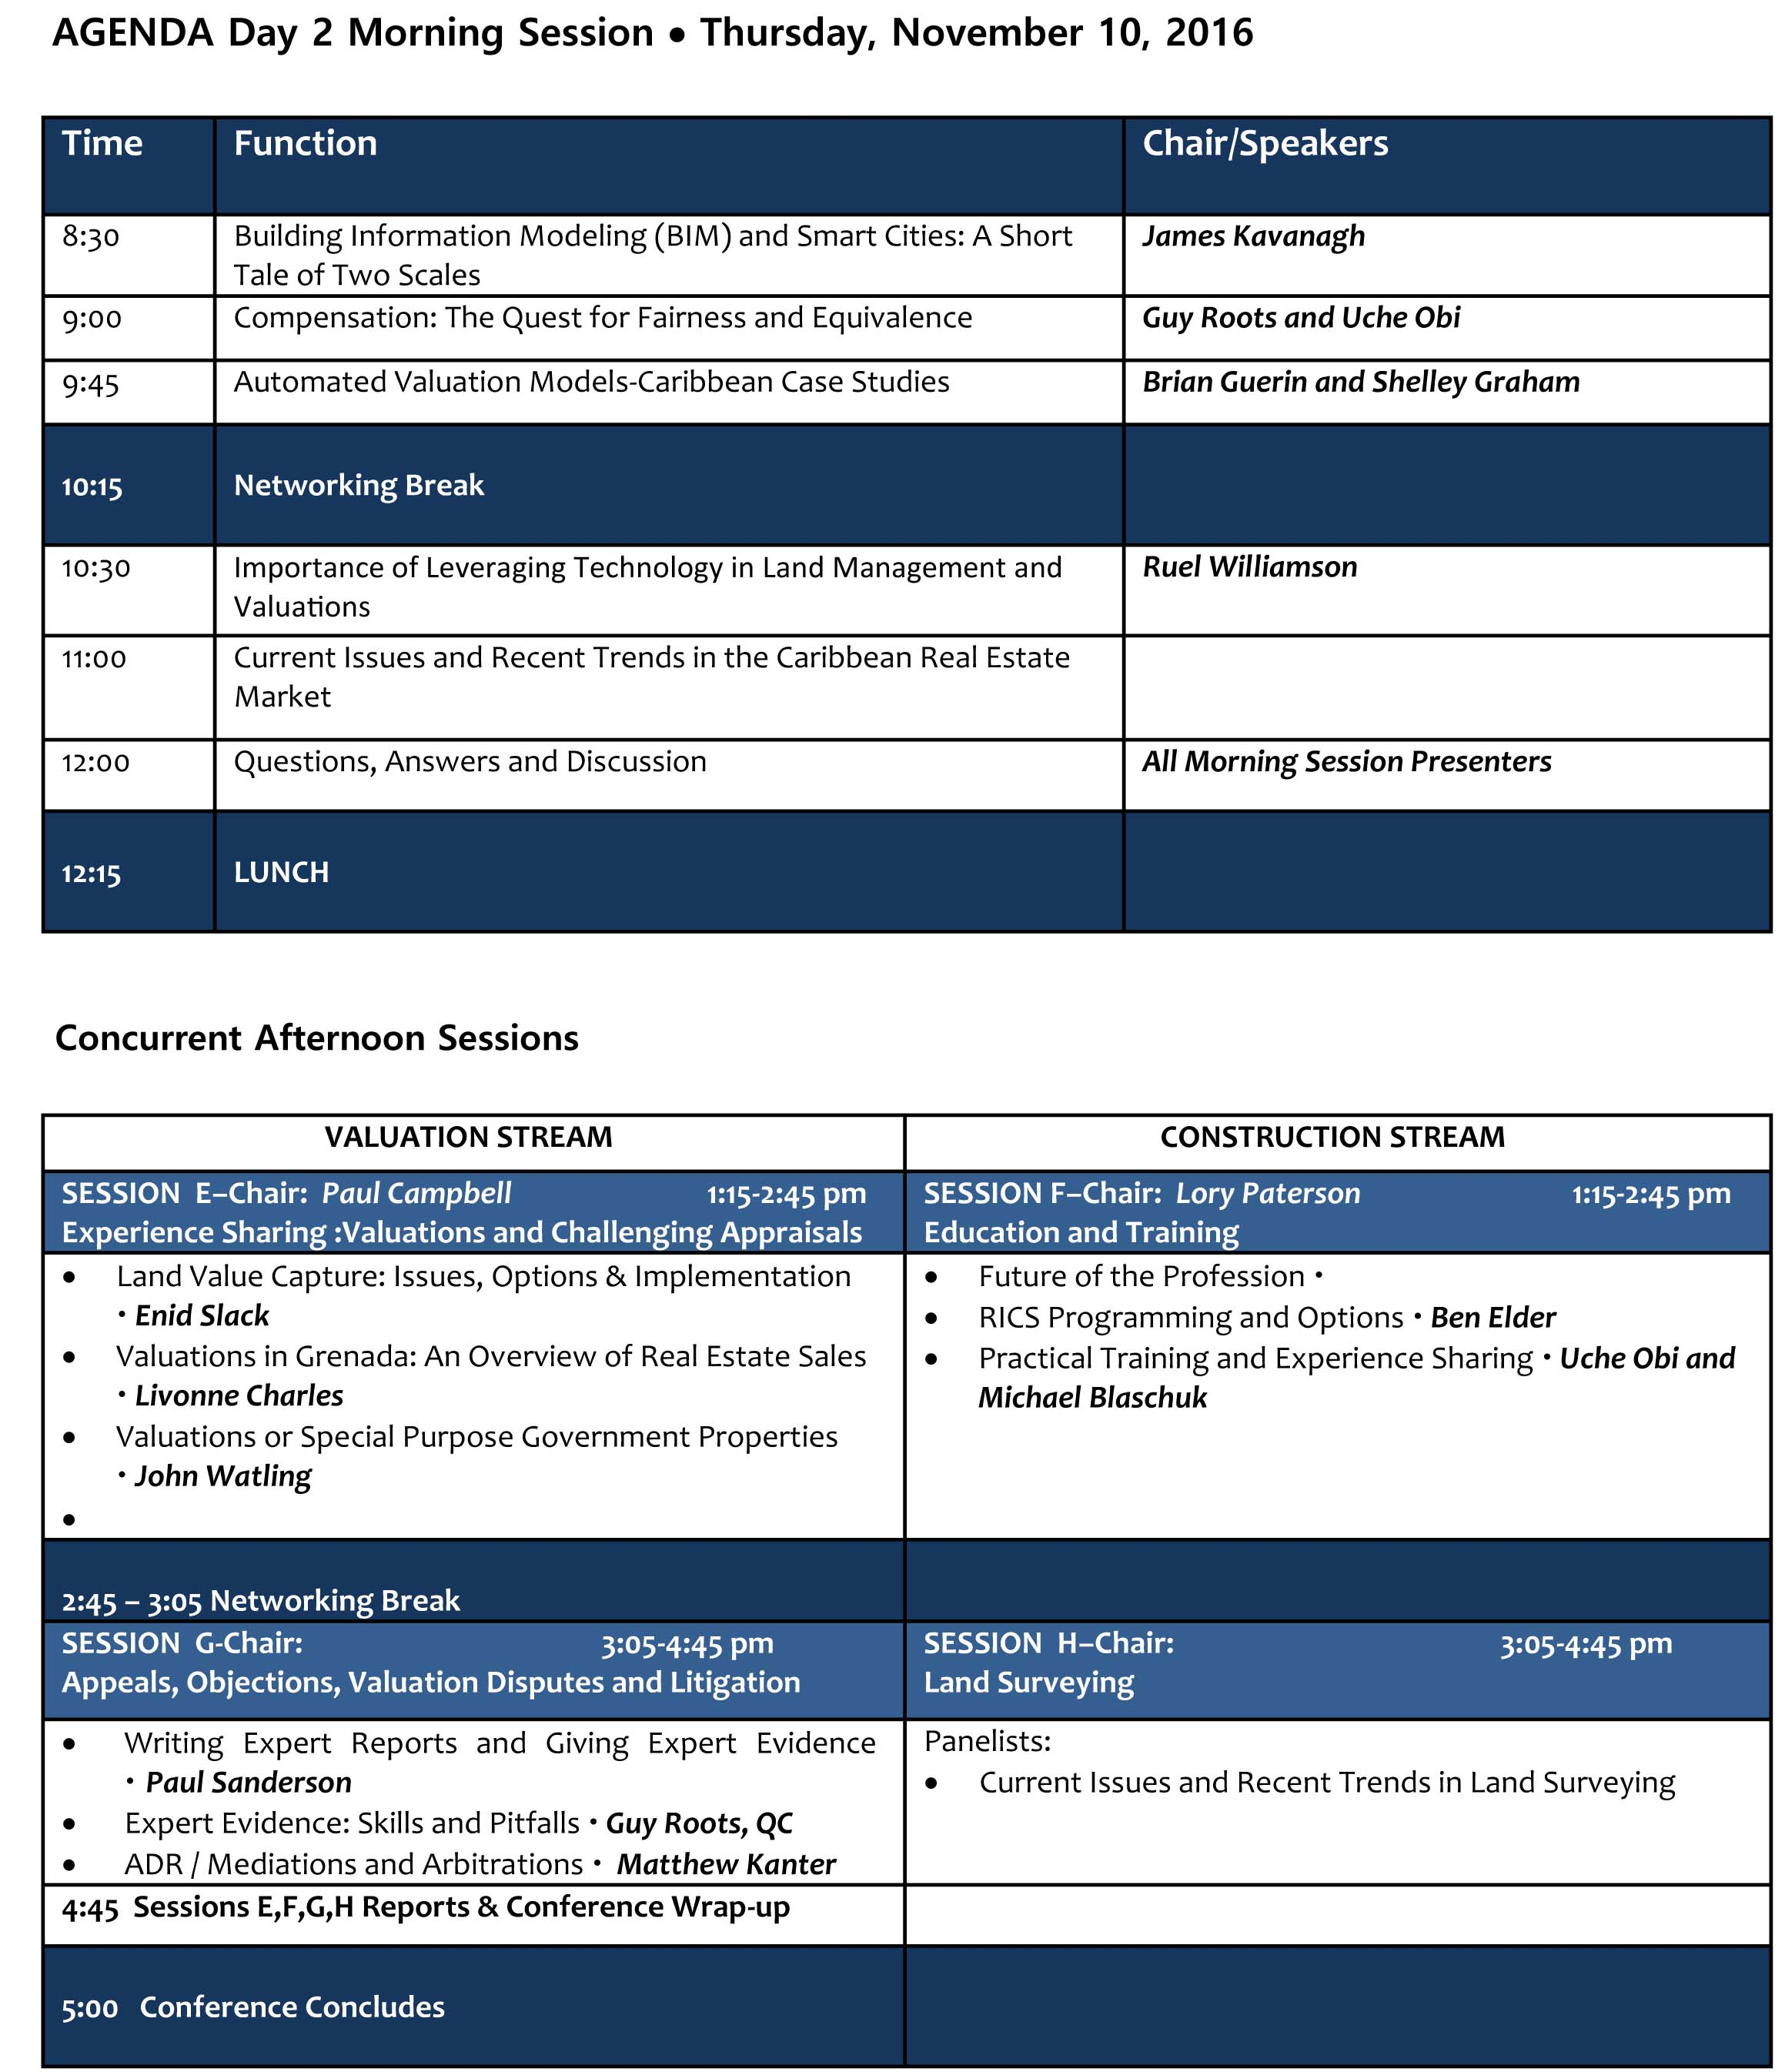 Day 2 Conference Agenda